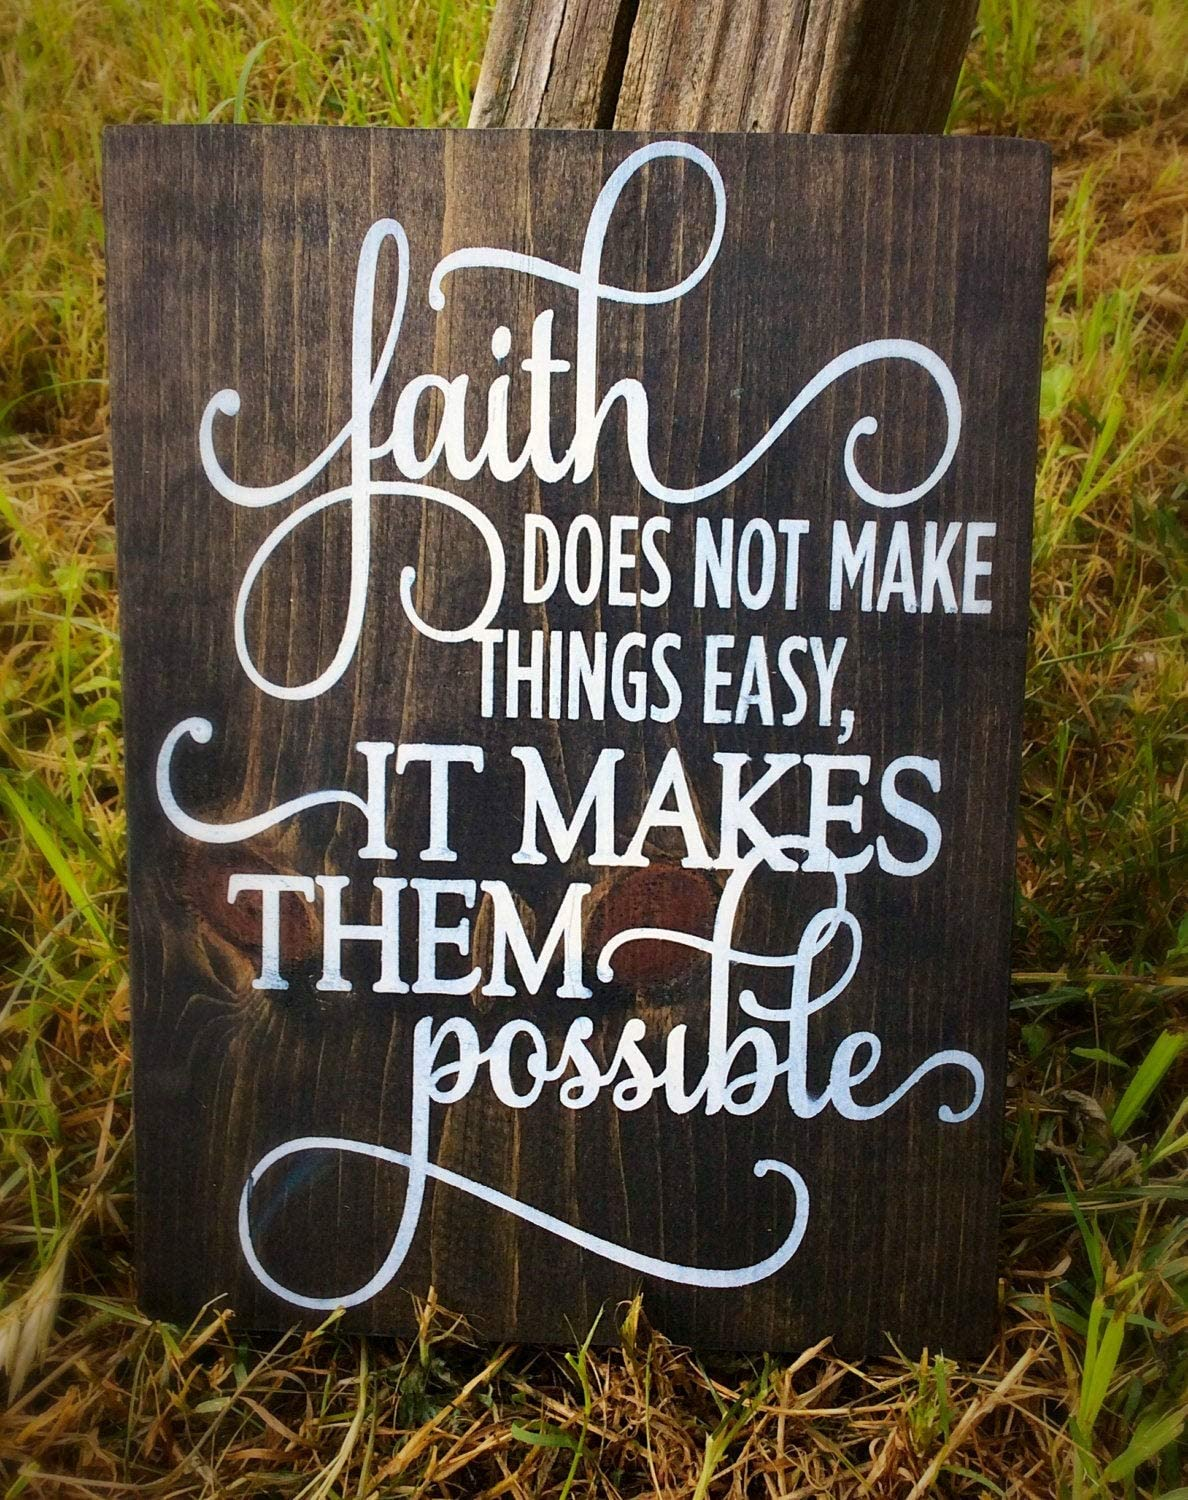 Wall Art Faith Does Not Make Things Easy It Makes Them Possible Inspirational Wood Sign, Scripture Art, Christian Decor, Bible Verse, Bible Quote Wood Plaque, Custom Gift